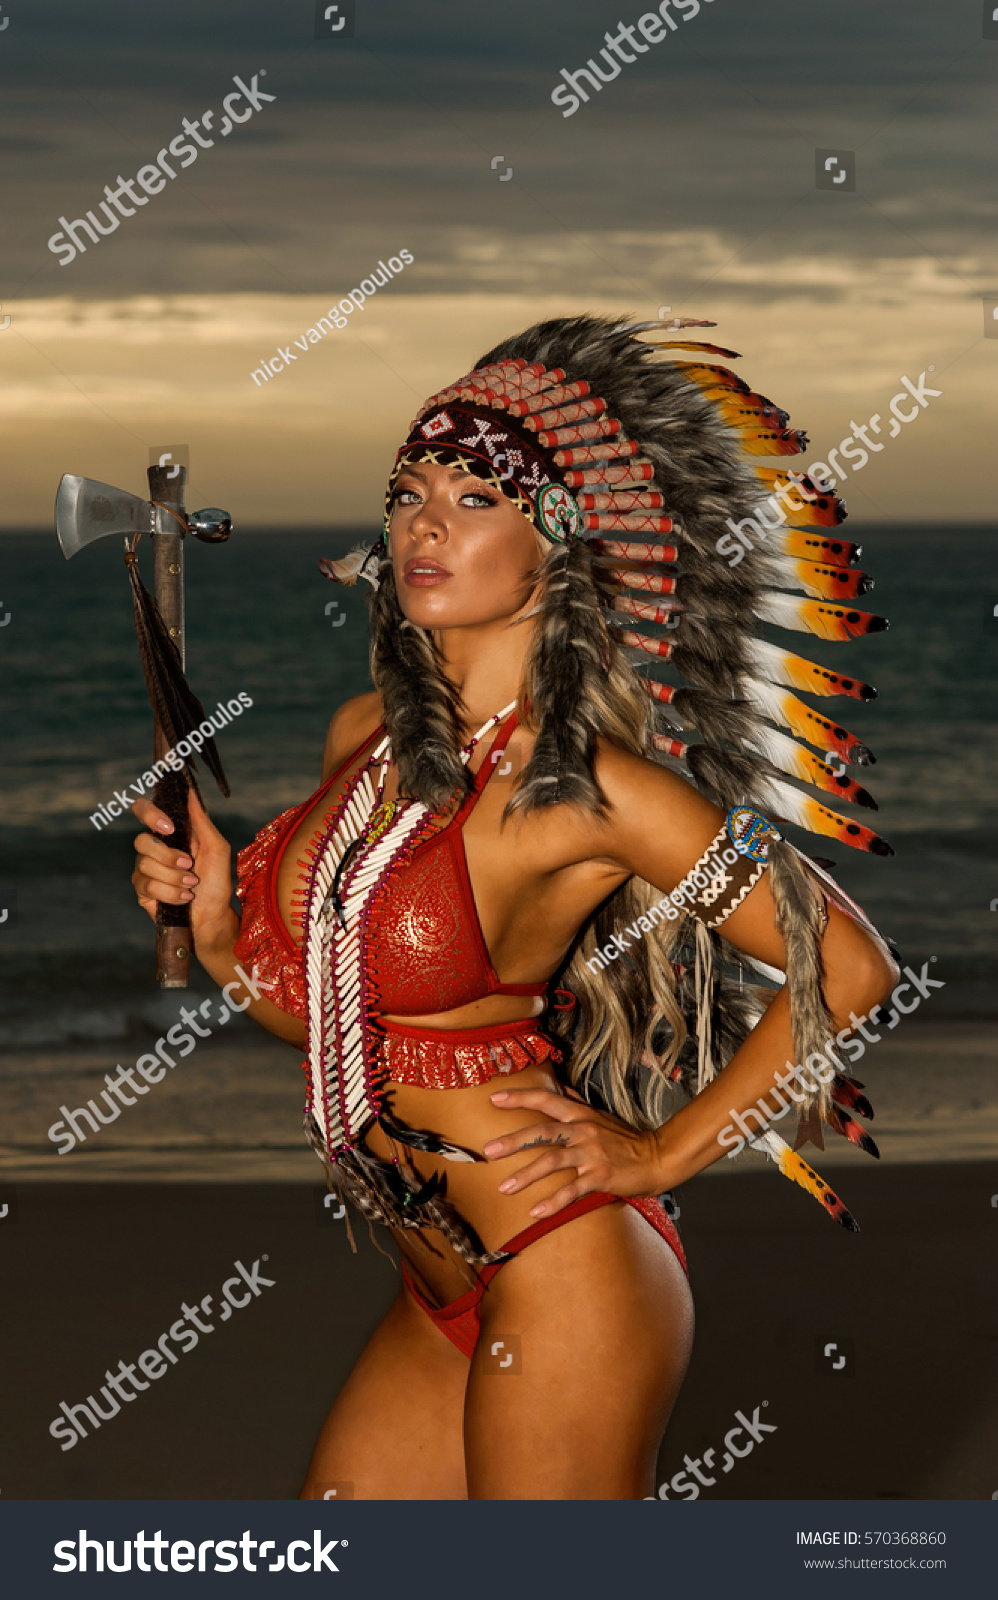 Sexy Woman Wearing American Indian War Stock Photo (Edit Now) 570368860